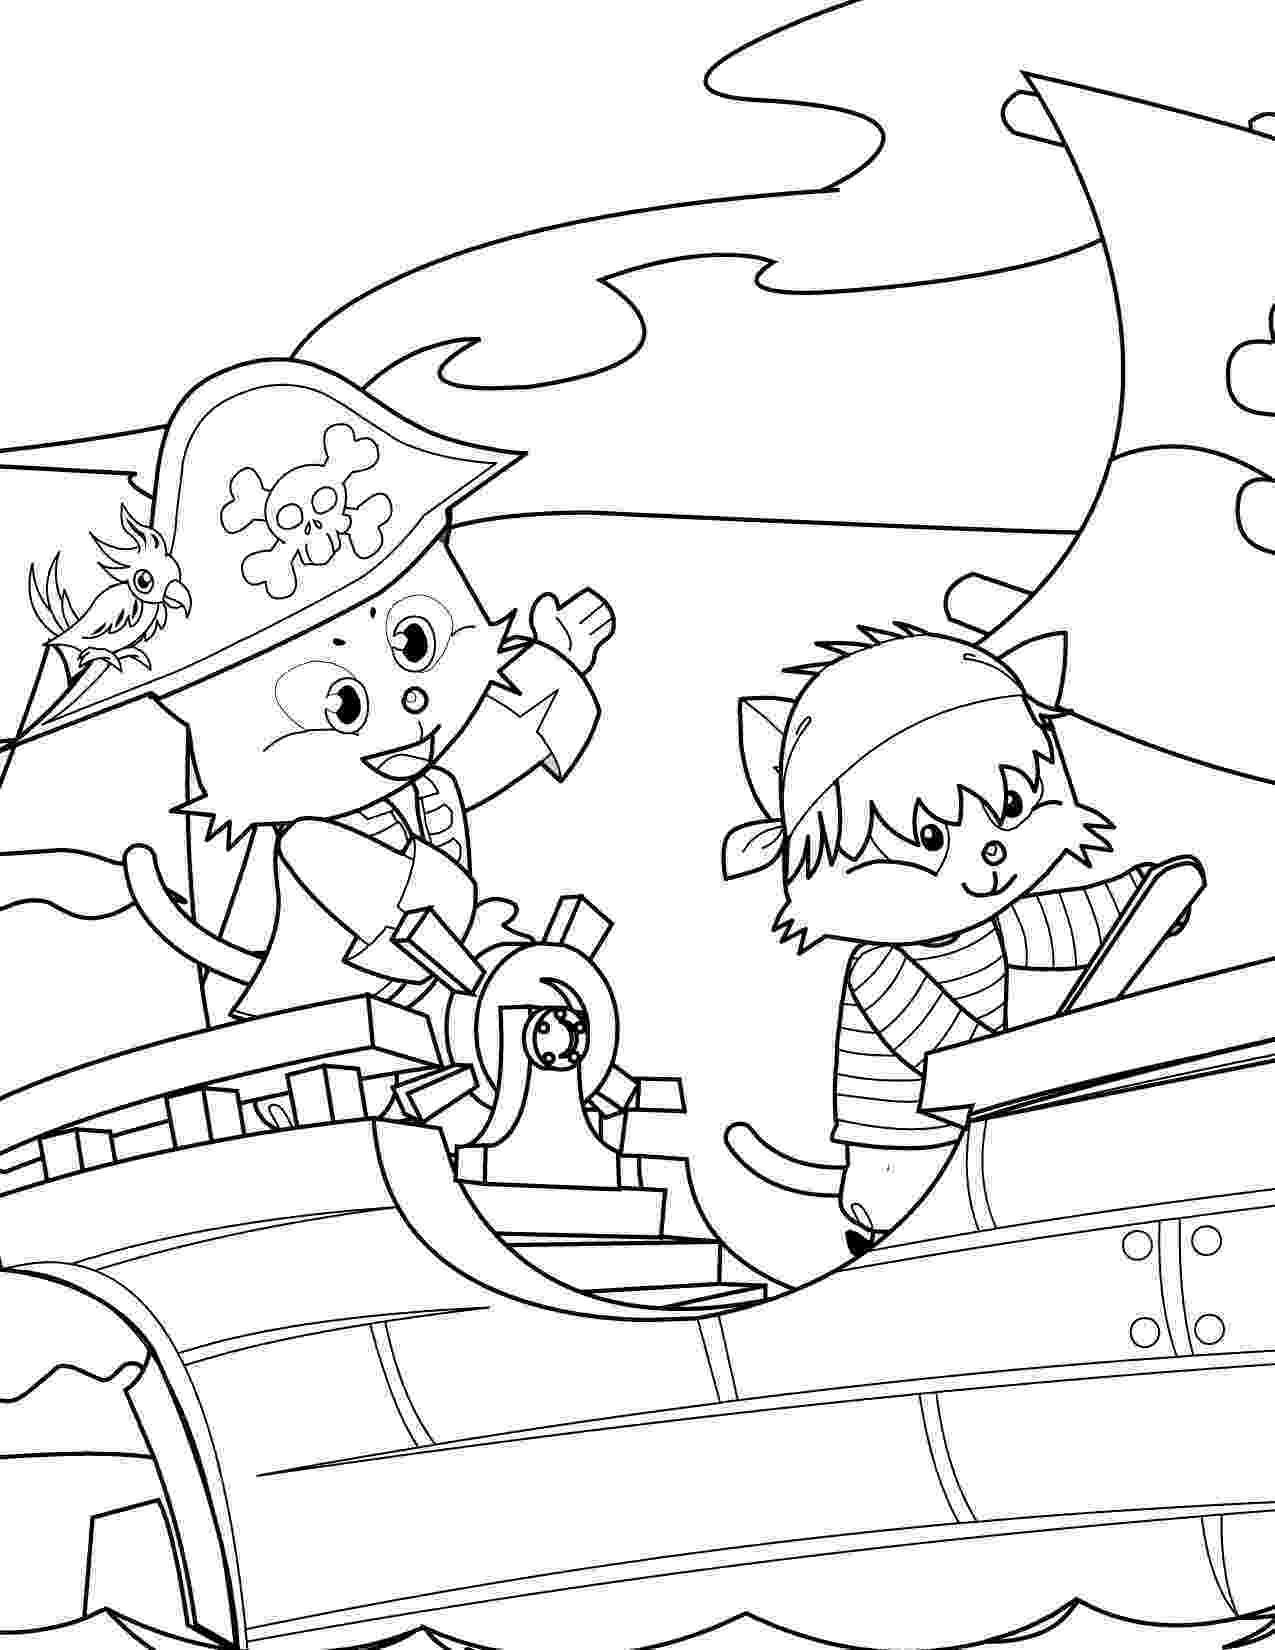 pirates coloring pages pirate coloring pages coloring pages pirates